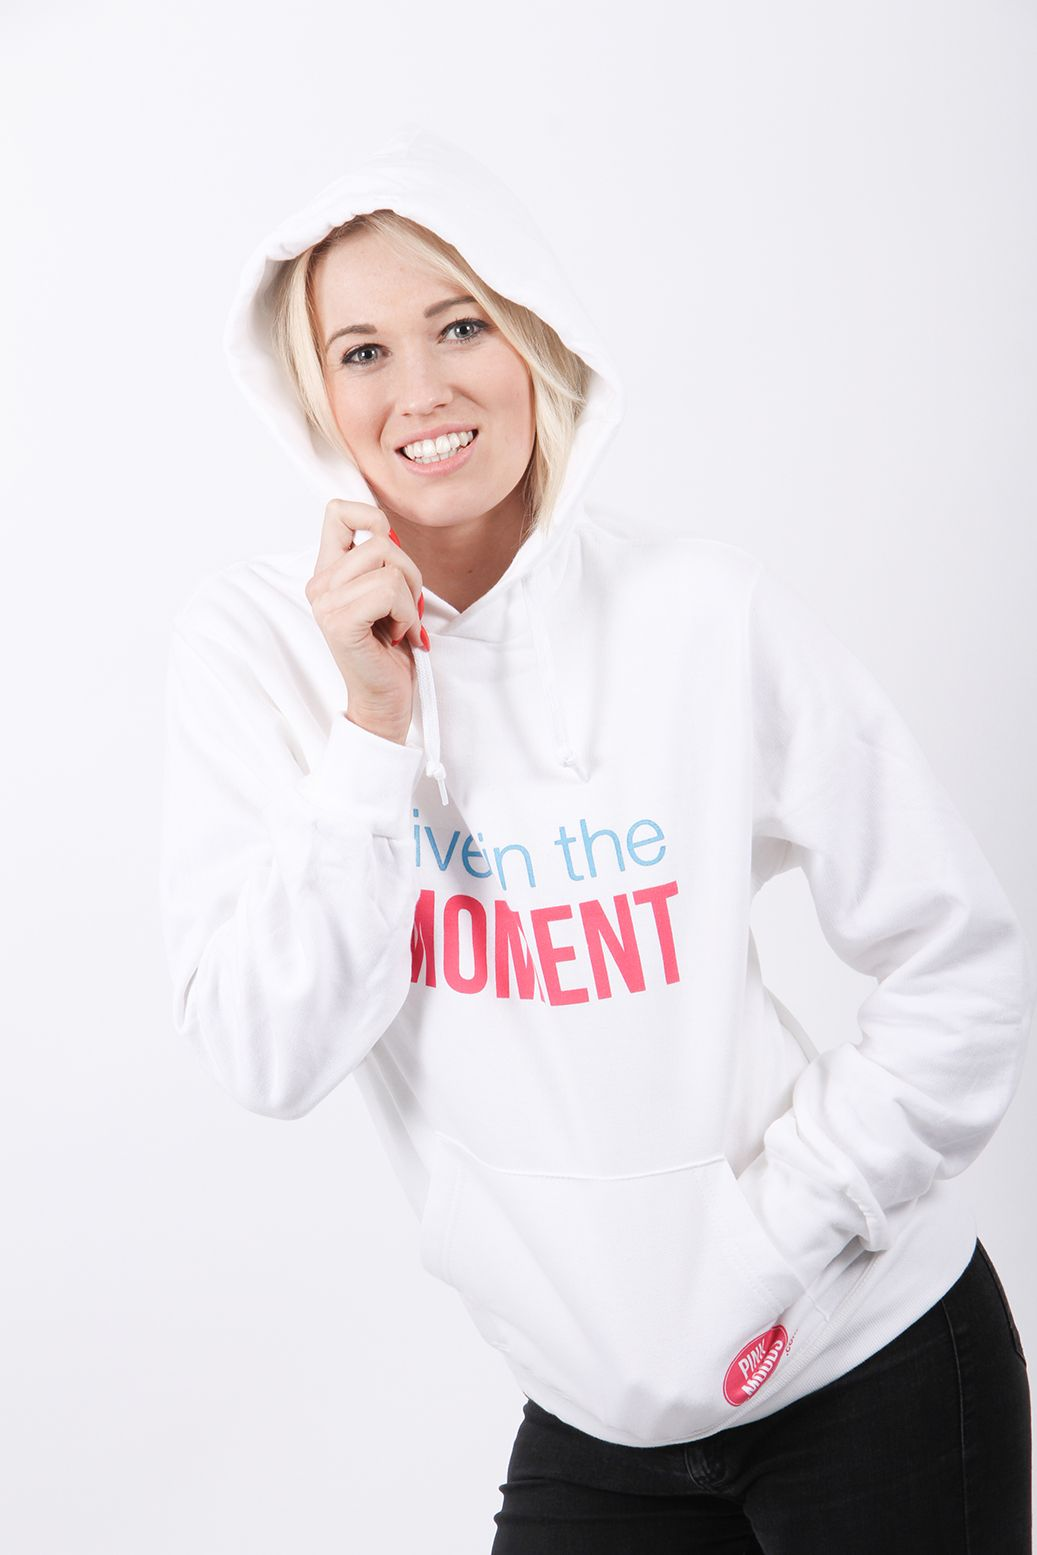 Live in the moment! Life is no rehearsal so go grab it with both hands and take charge of the moment! If you need some bite sized advice on how to make the most of your life, subscribe to our Video Moods series for some hints and tips on how to make the most of the now! £20.99